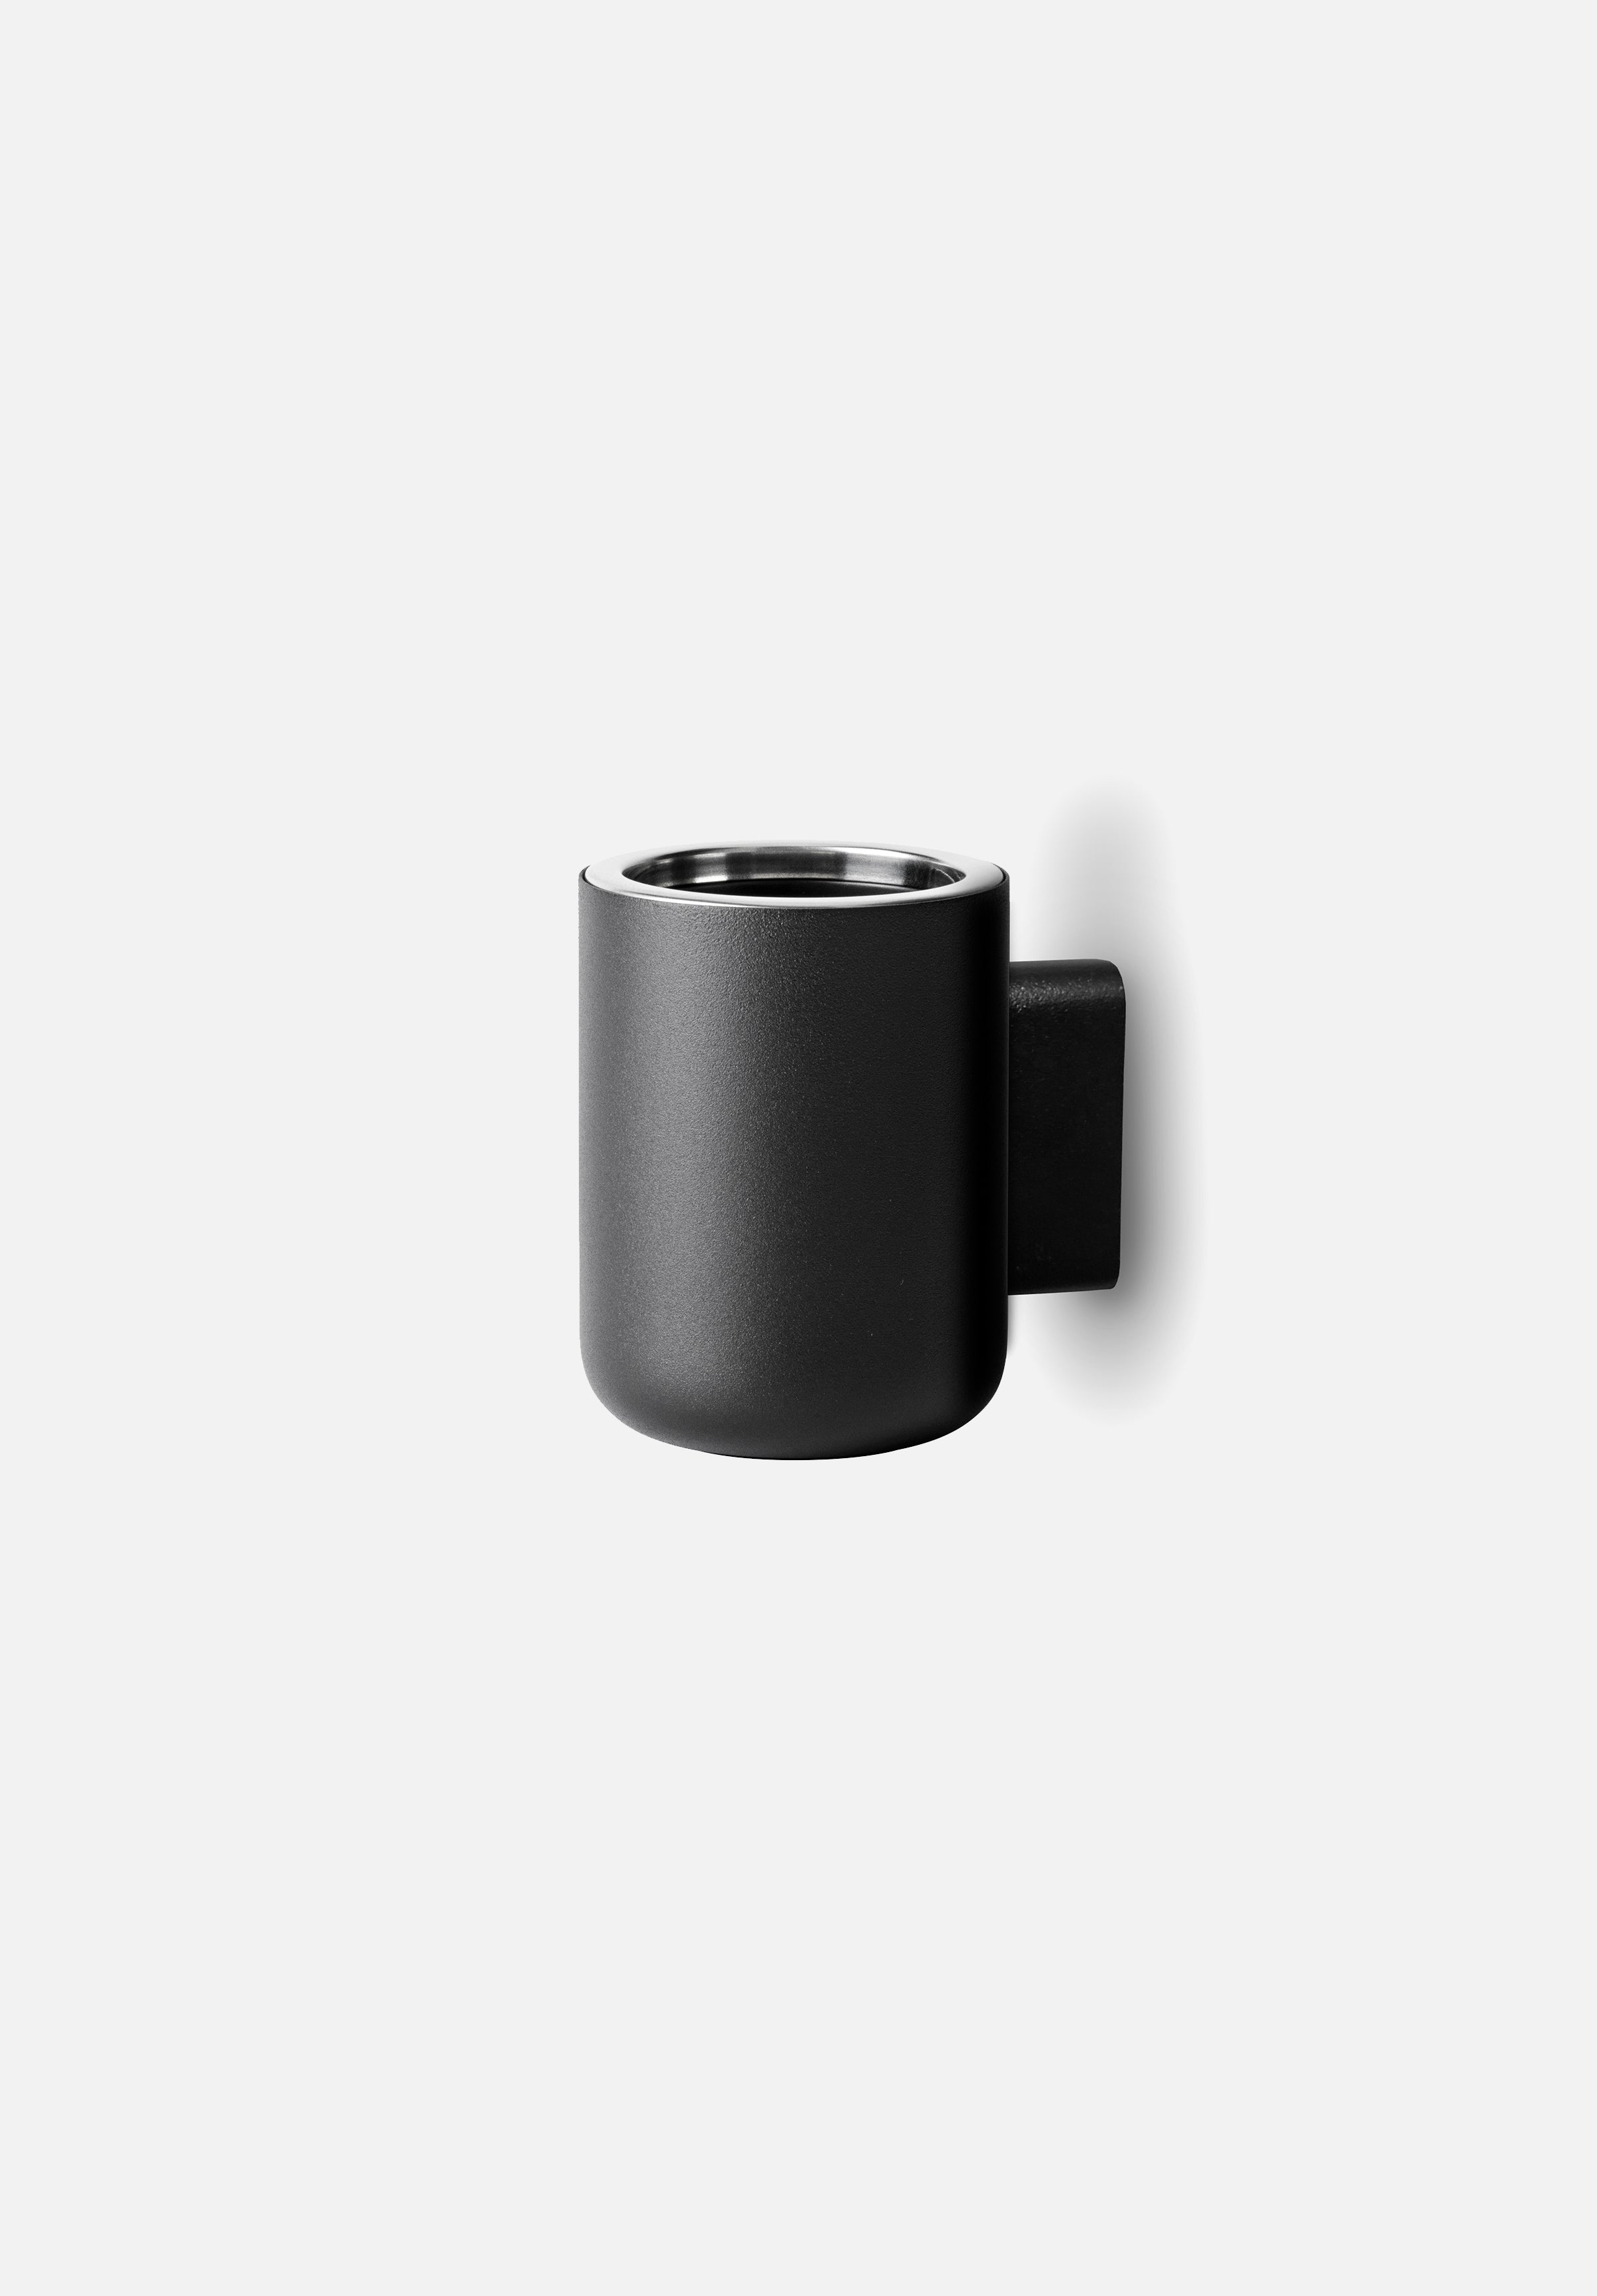 Toothbrush Holder-Norm Architects-Menu-Black-Wall Mounted-Average